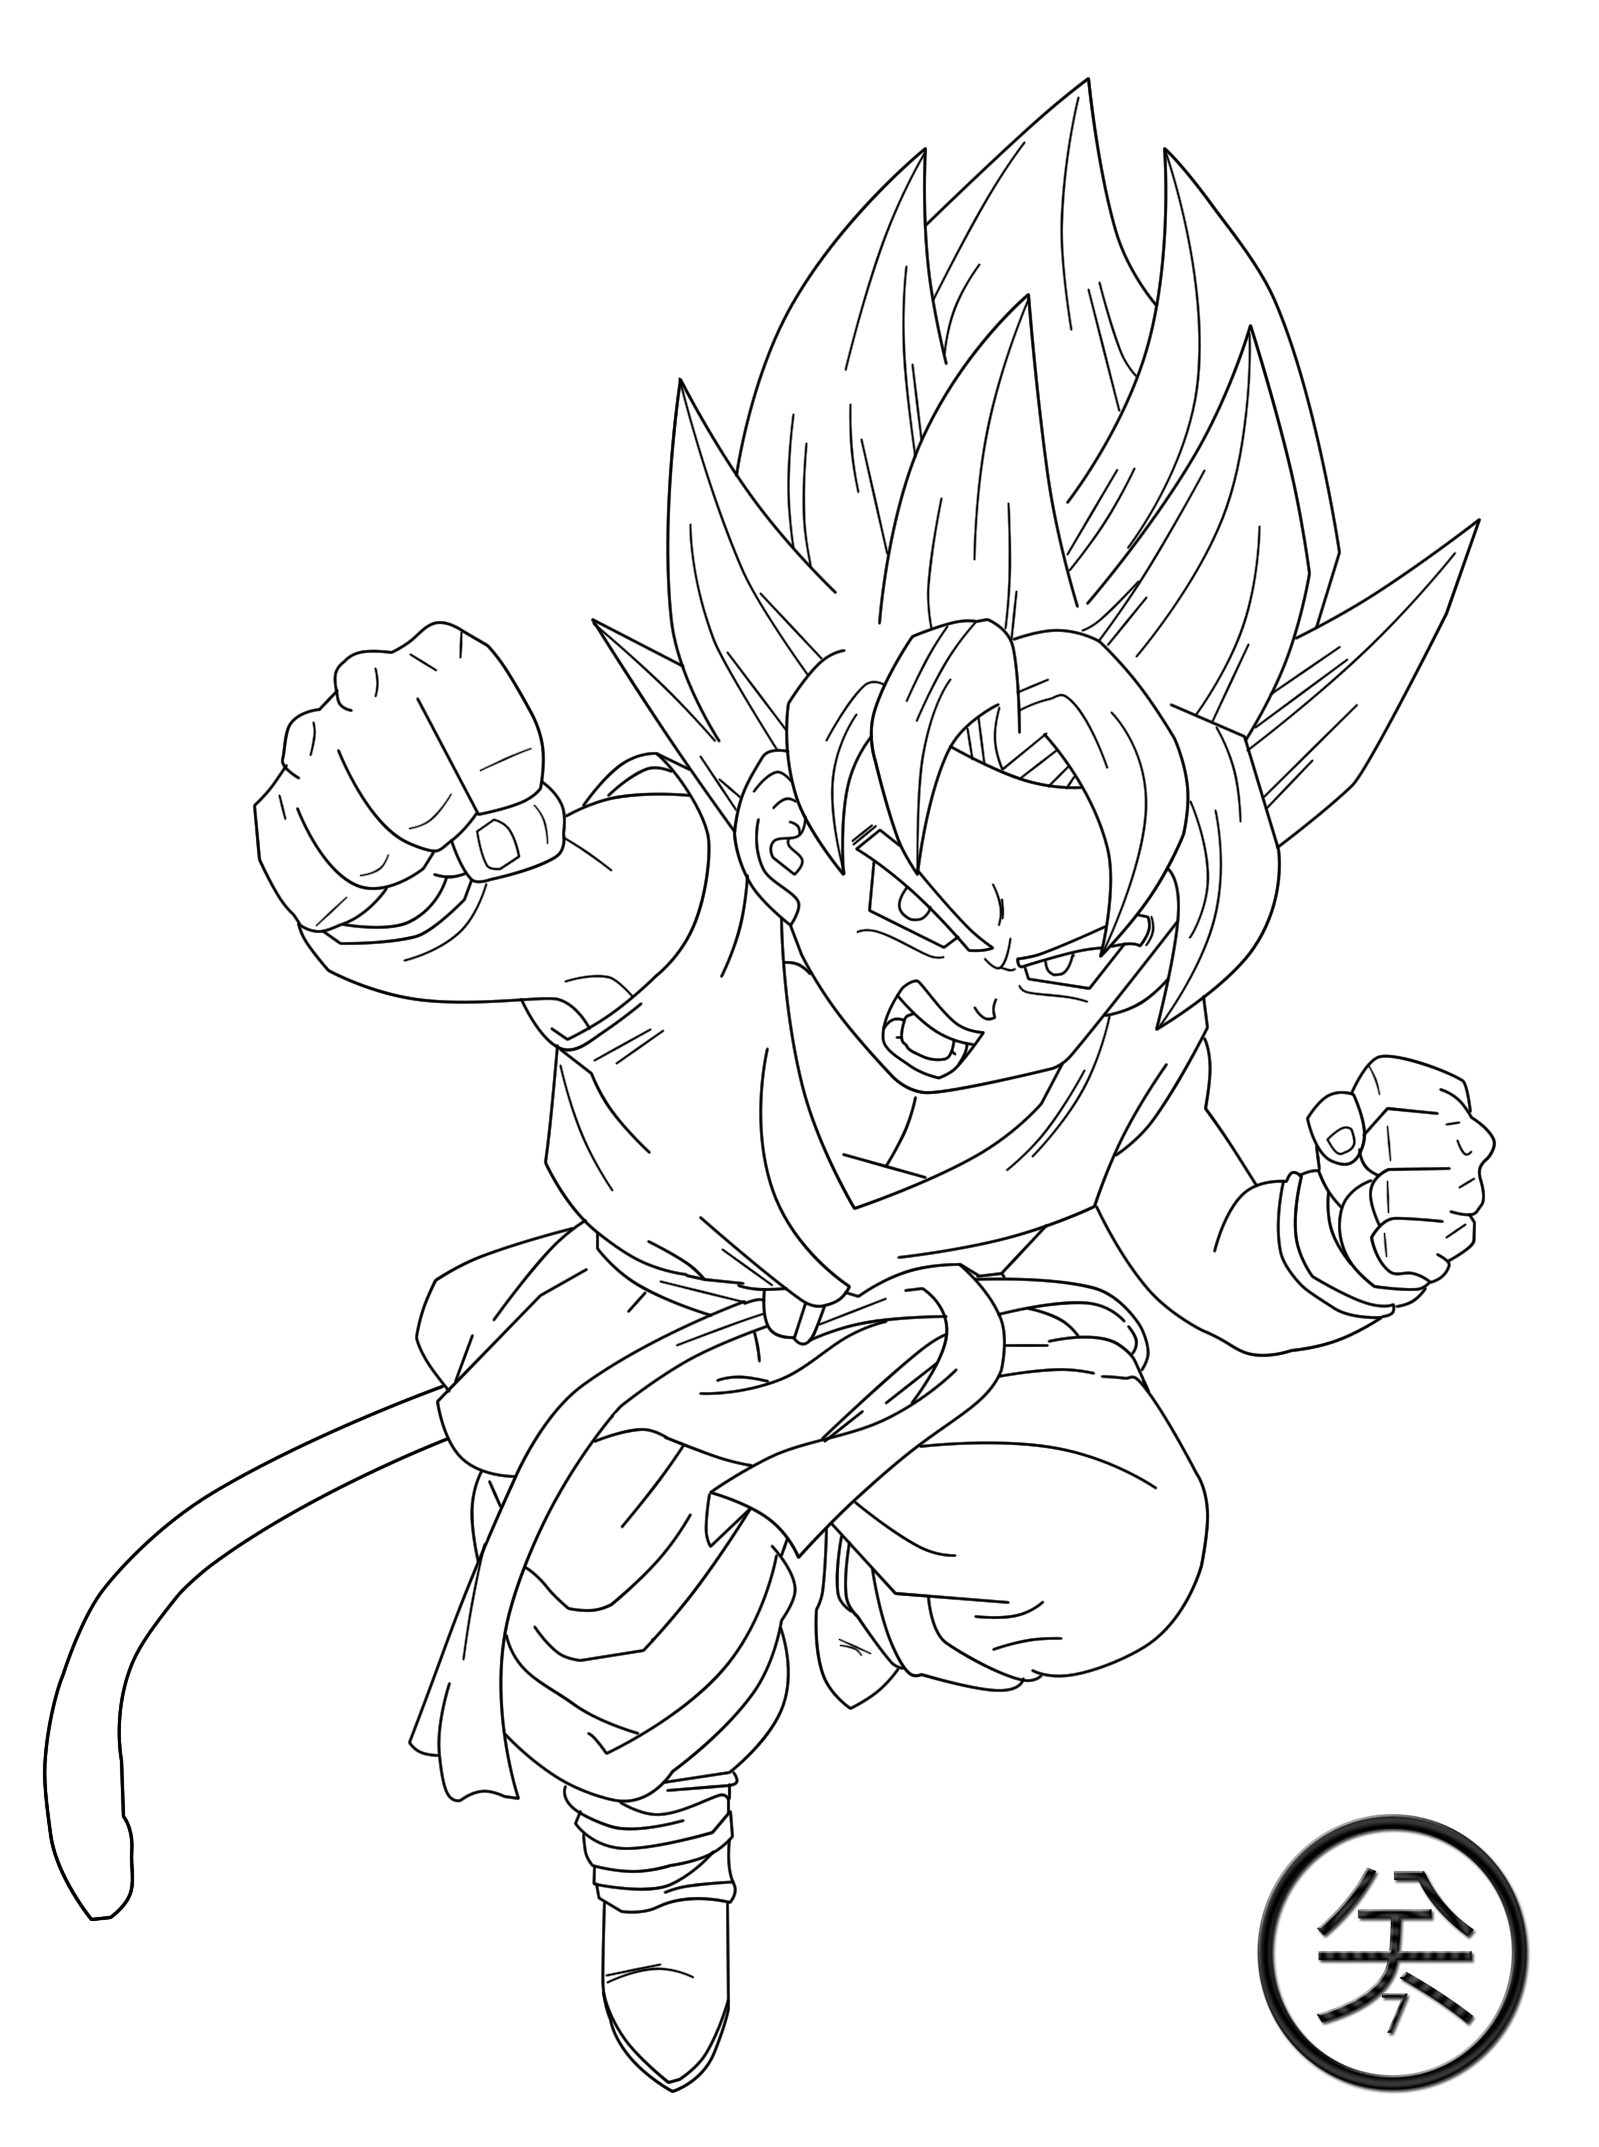 Dragonball Gt Coloring Pages 183 | Free Printable Coloring Pages - Coloring  Home | 2147x1599